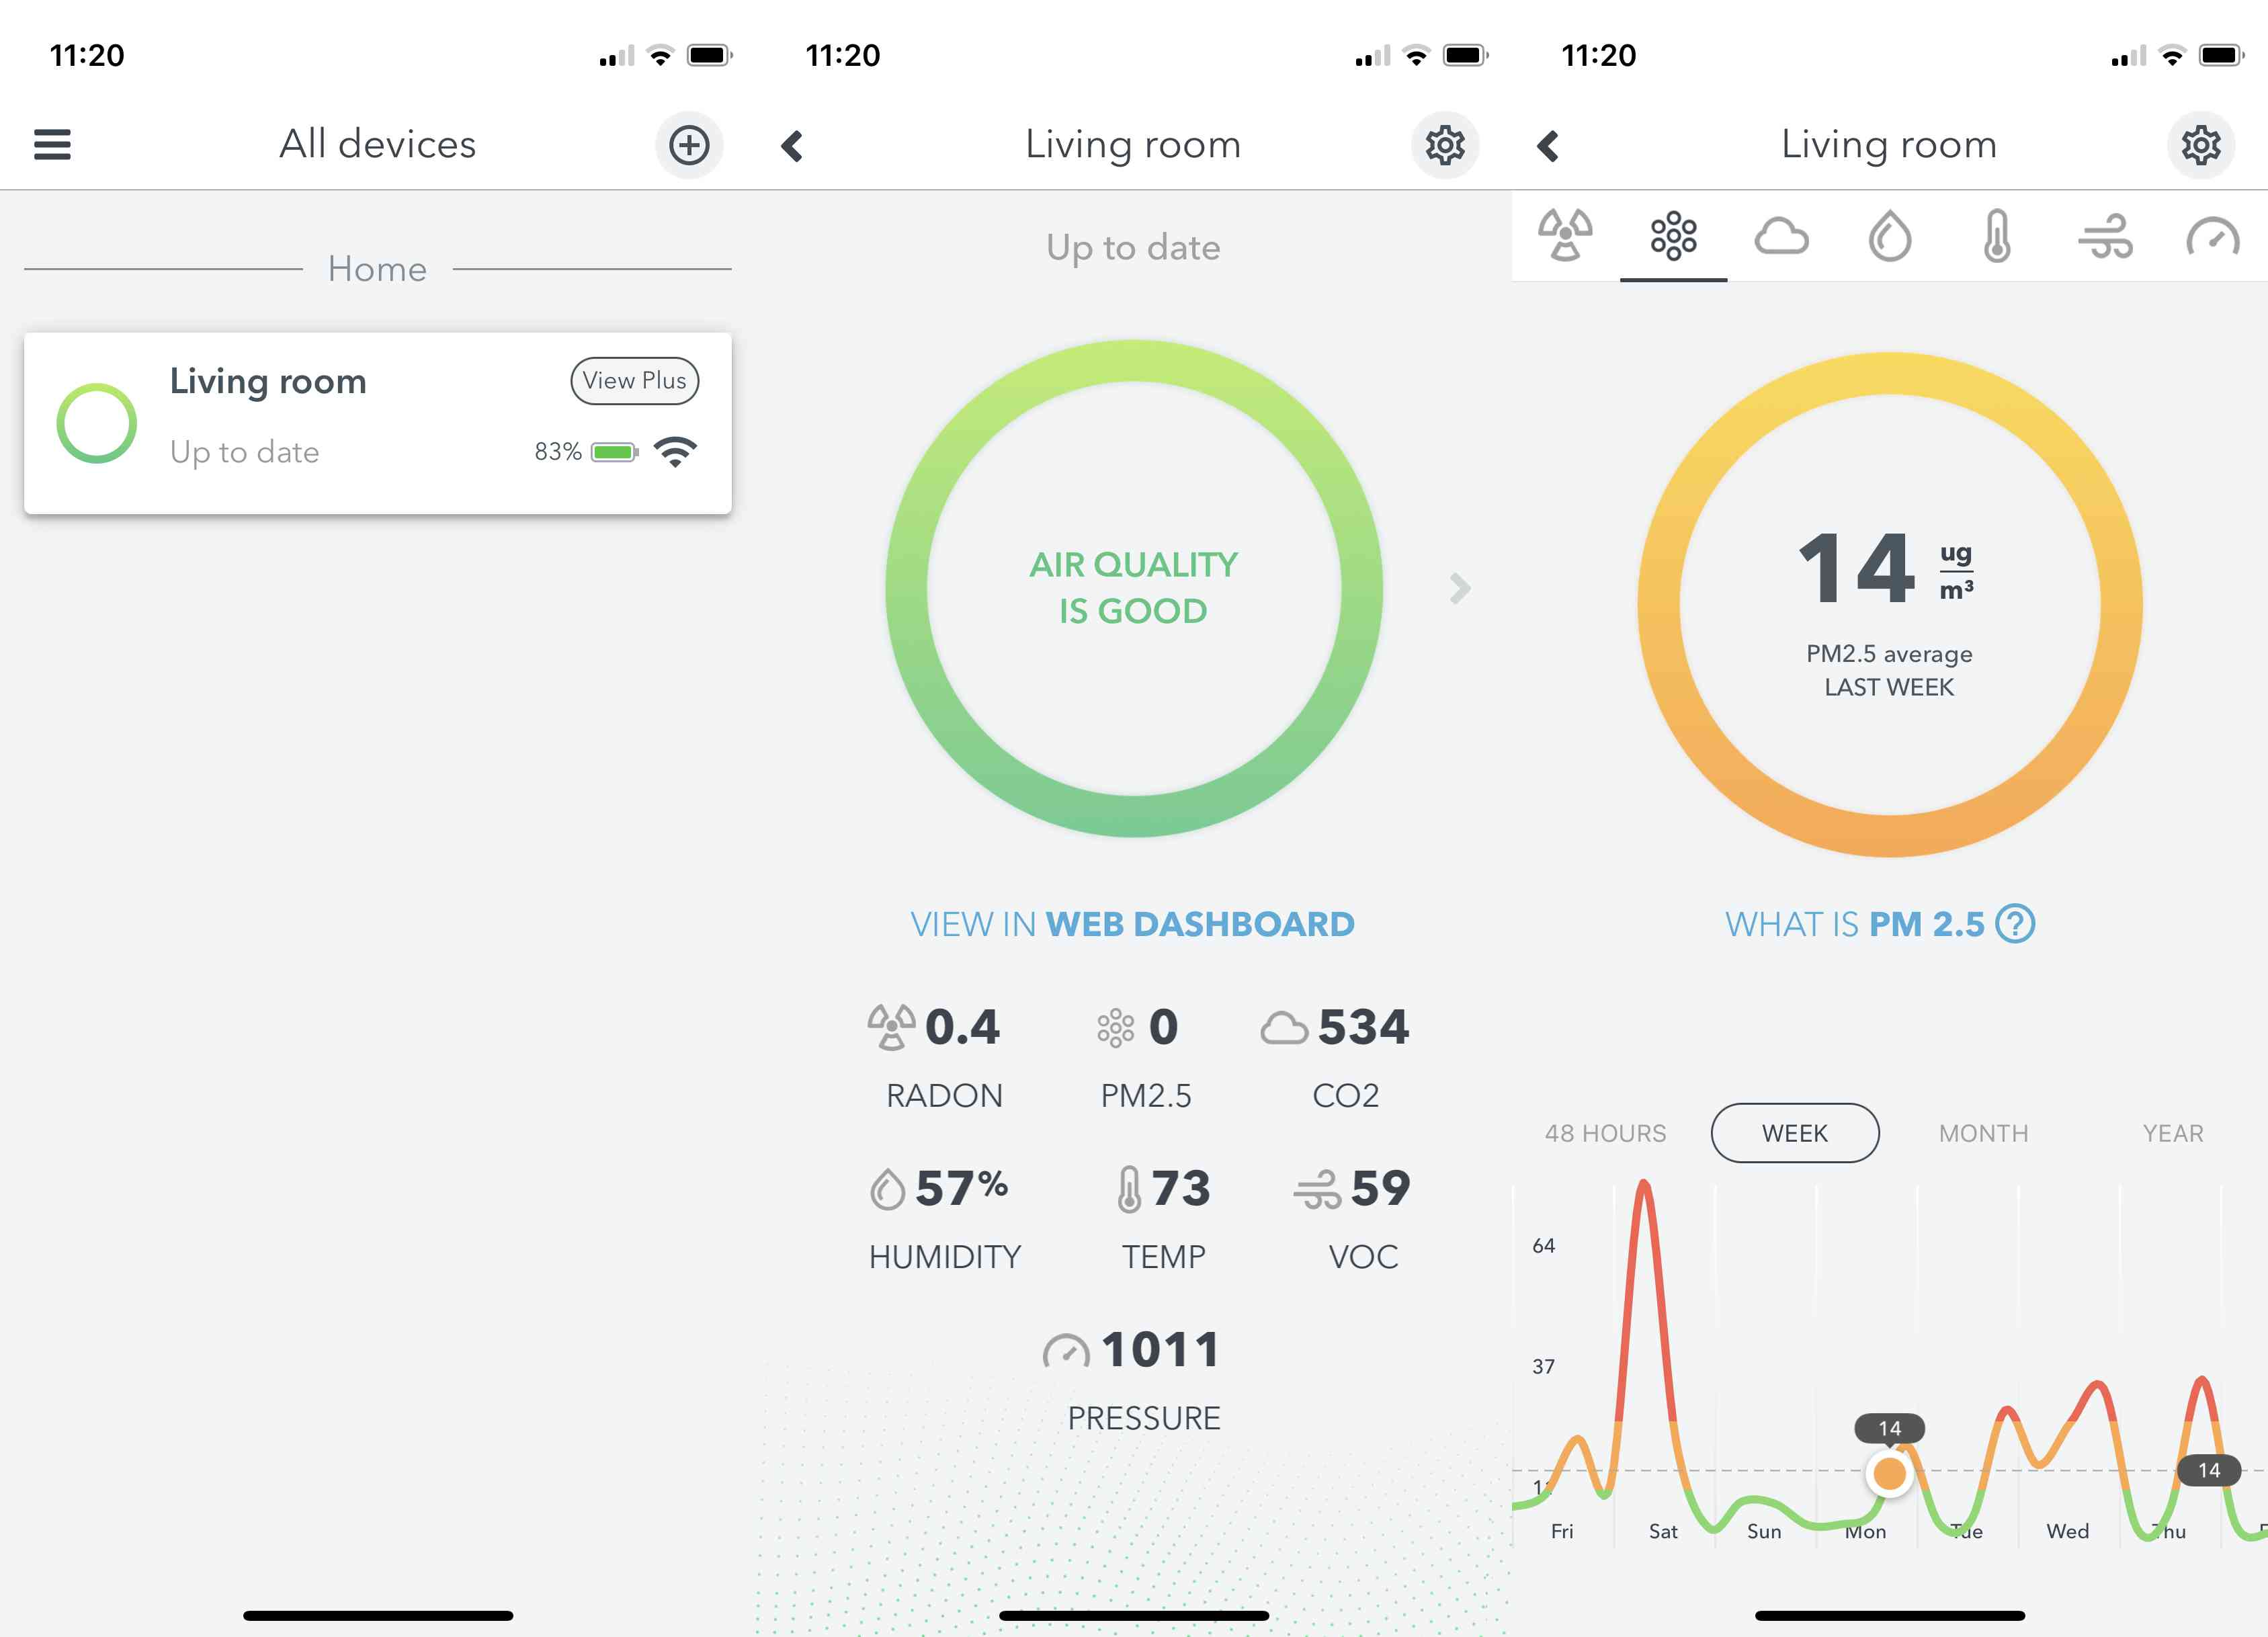 Air quality measurements provided by the AirThings View Plus